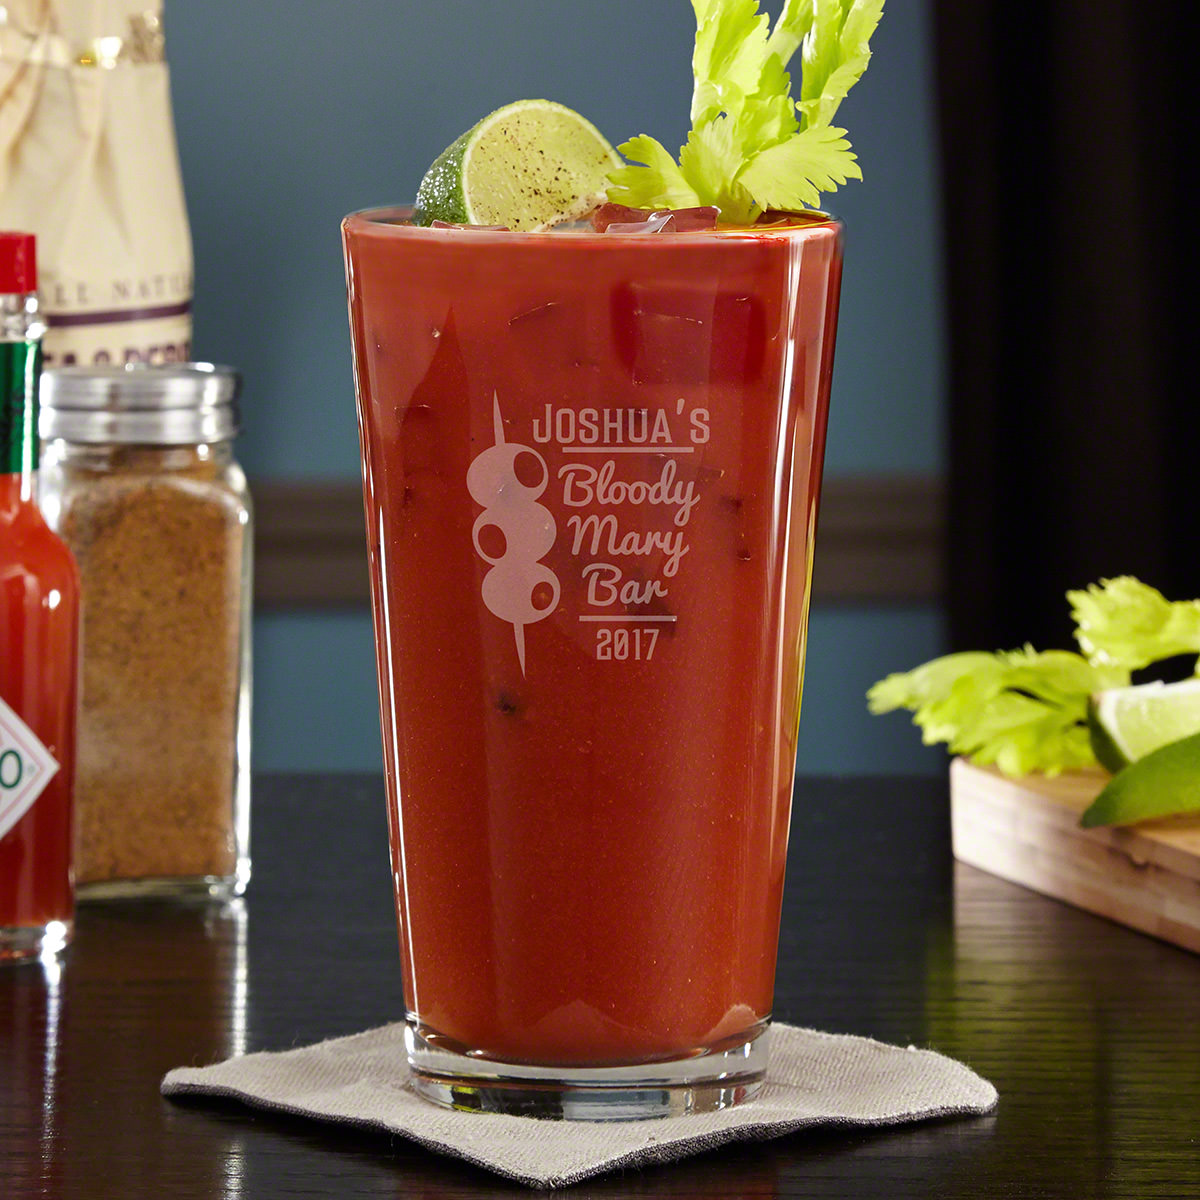 Late night weekend adventures sometimes means that a little hair-of-the-dog the next day is a mandatory antidote. Take brunch cocktail enjoyment up a notch with our bloody mary personalized pint glass, with its retro cursive font, trio of stacked olives, #bar